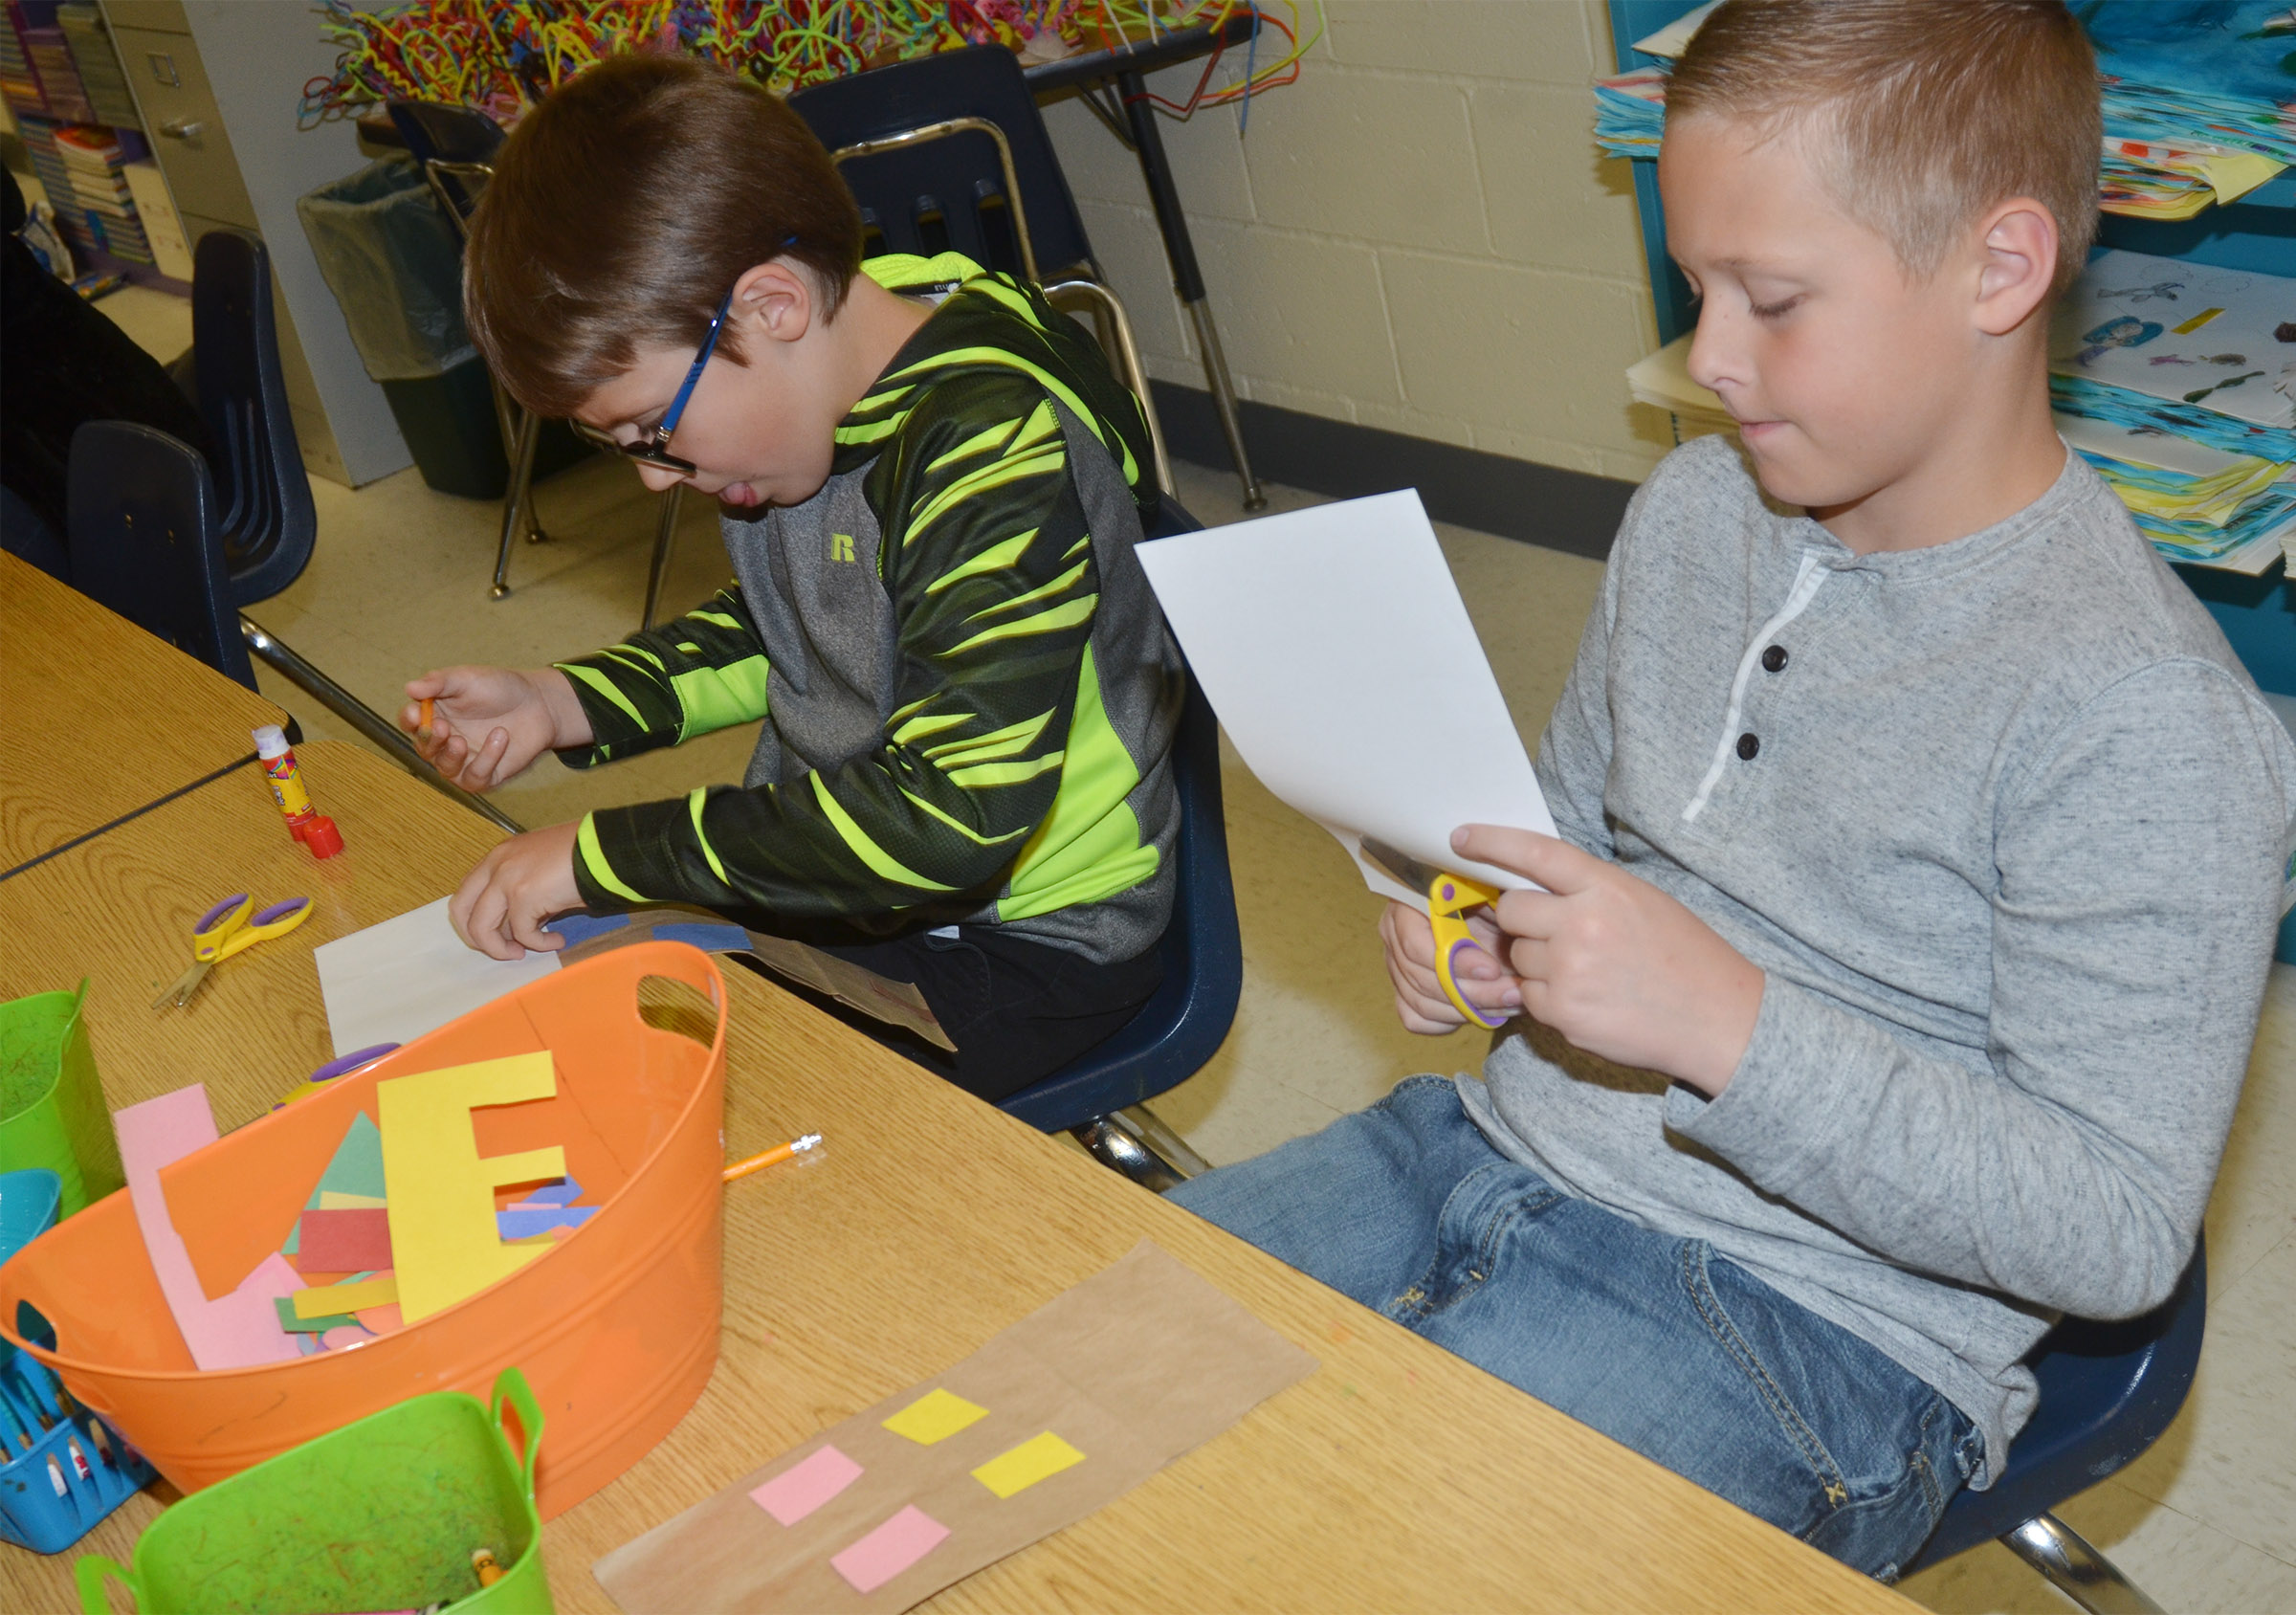 CES second-graders Dalton Shively, at left, and Evan Lockridge make their paper buildings.